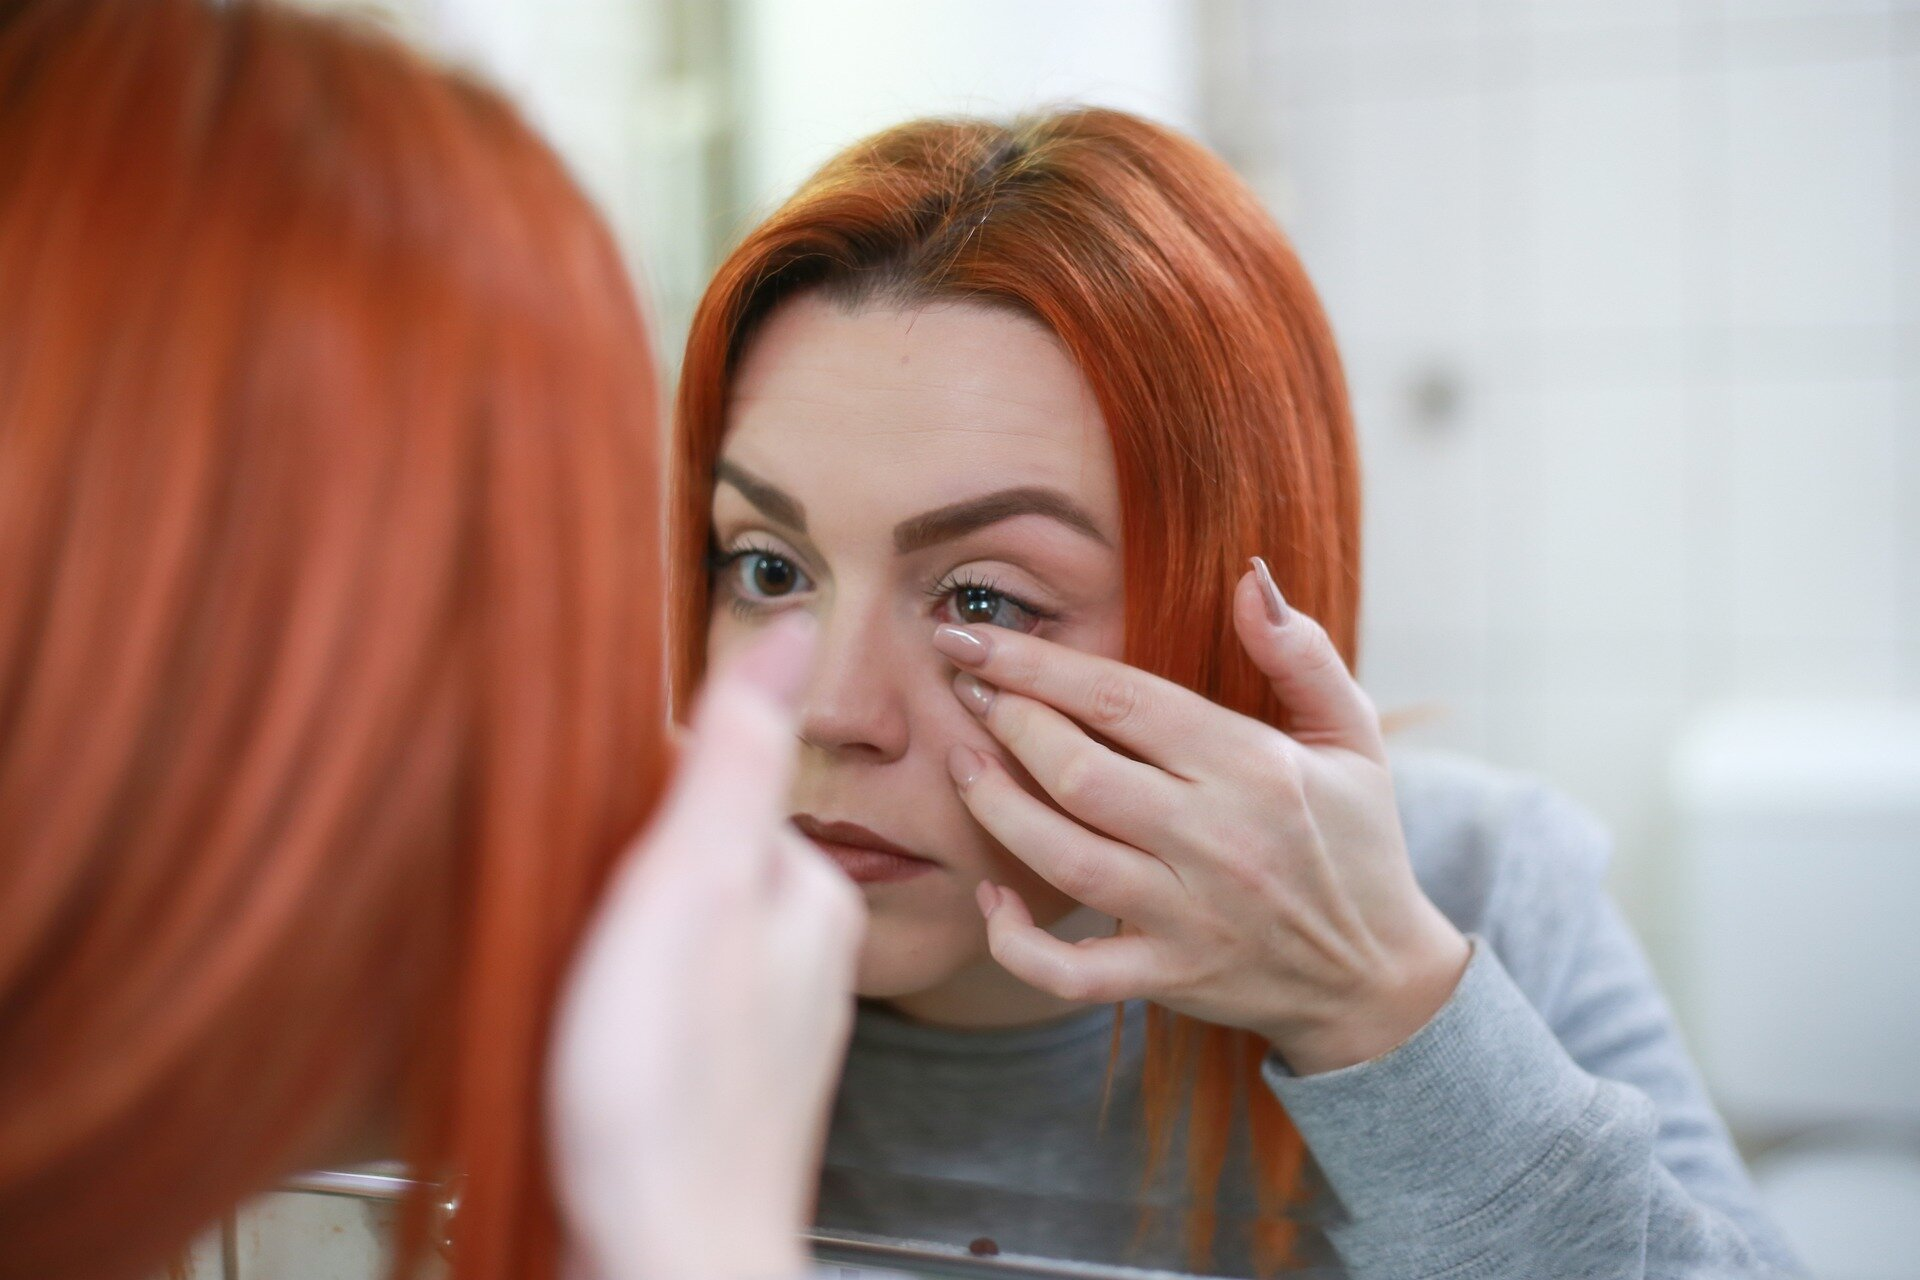 woman putting contact lenses in eye